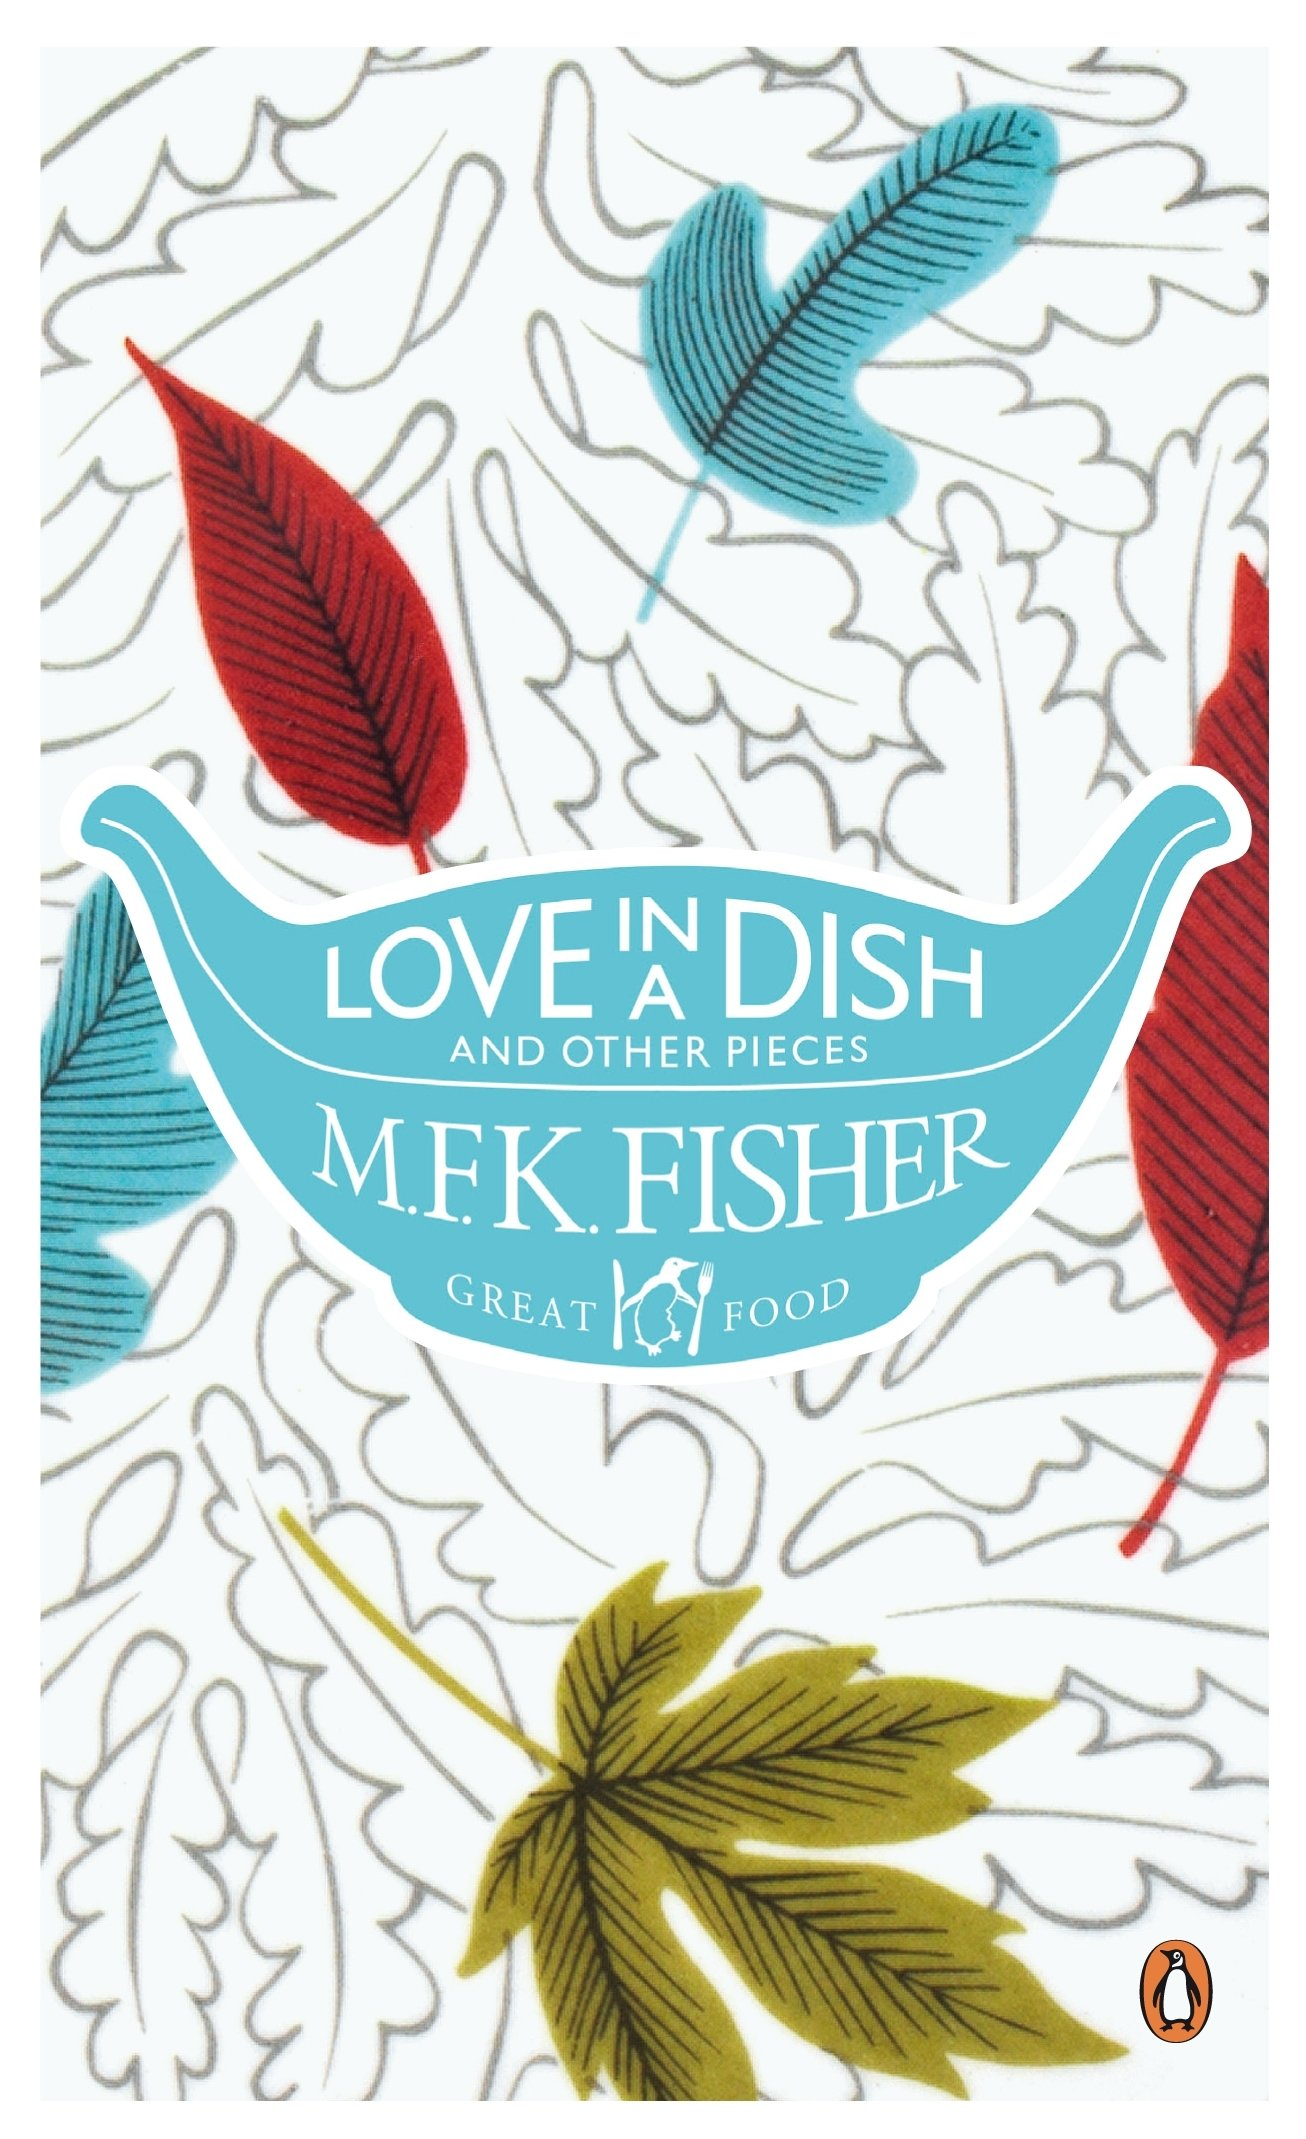 love in a dish and other pieces fisher m f k